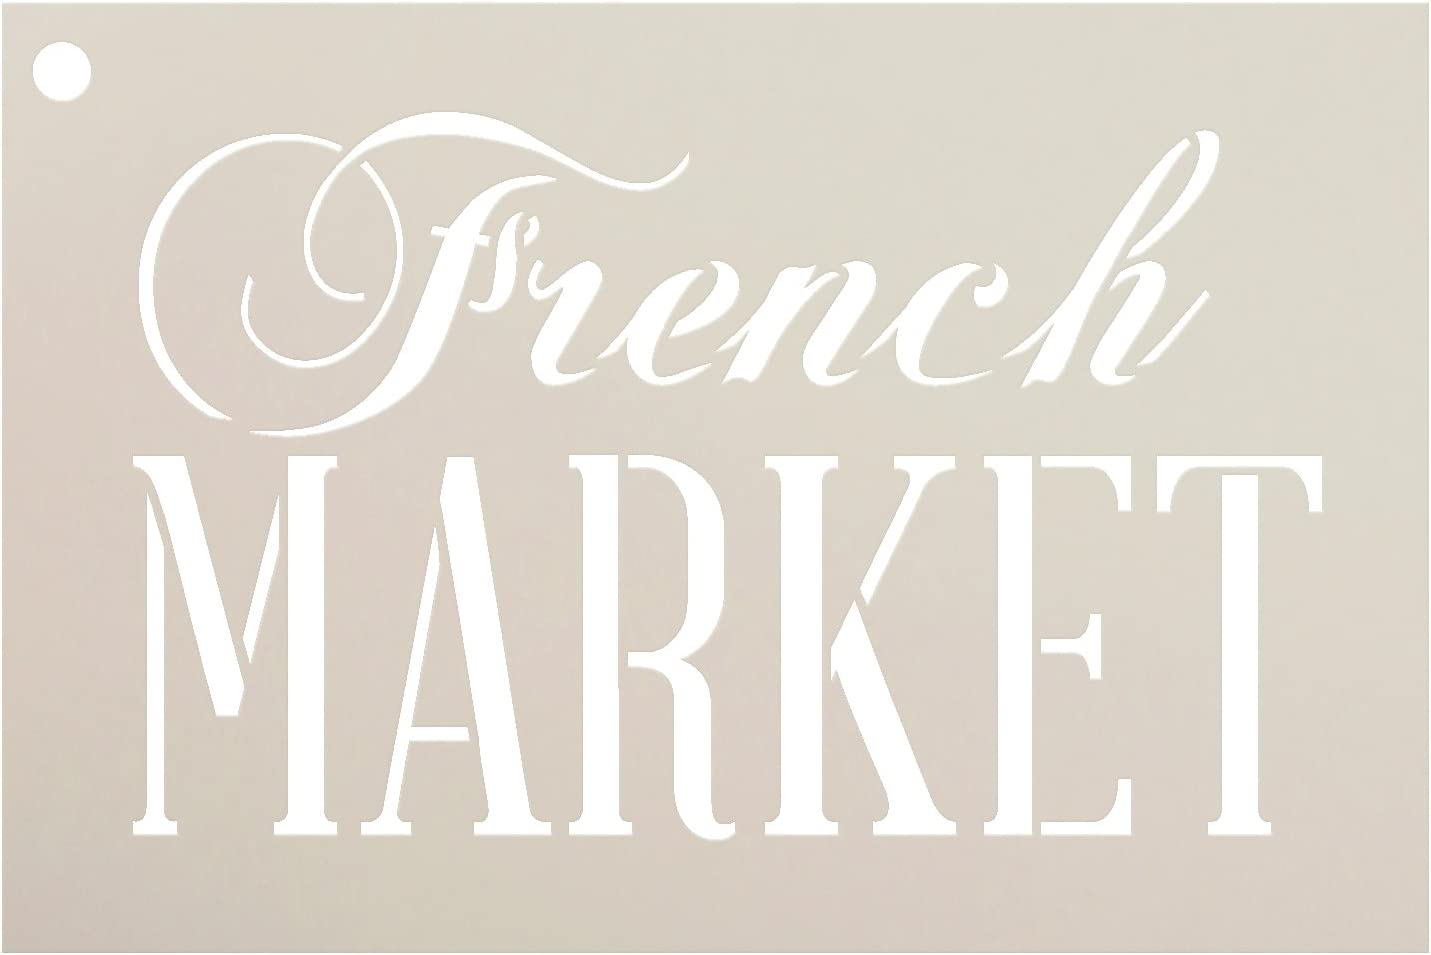 French Market Word Stencil StudioR12   Farmhouse and Elegant - Reusable Mylar Template   Painting, Chalk, Mixed Media   Wall Art, DIY Home Decor - STCL909 - Select Size (5